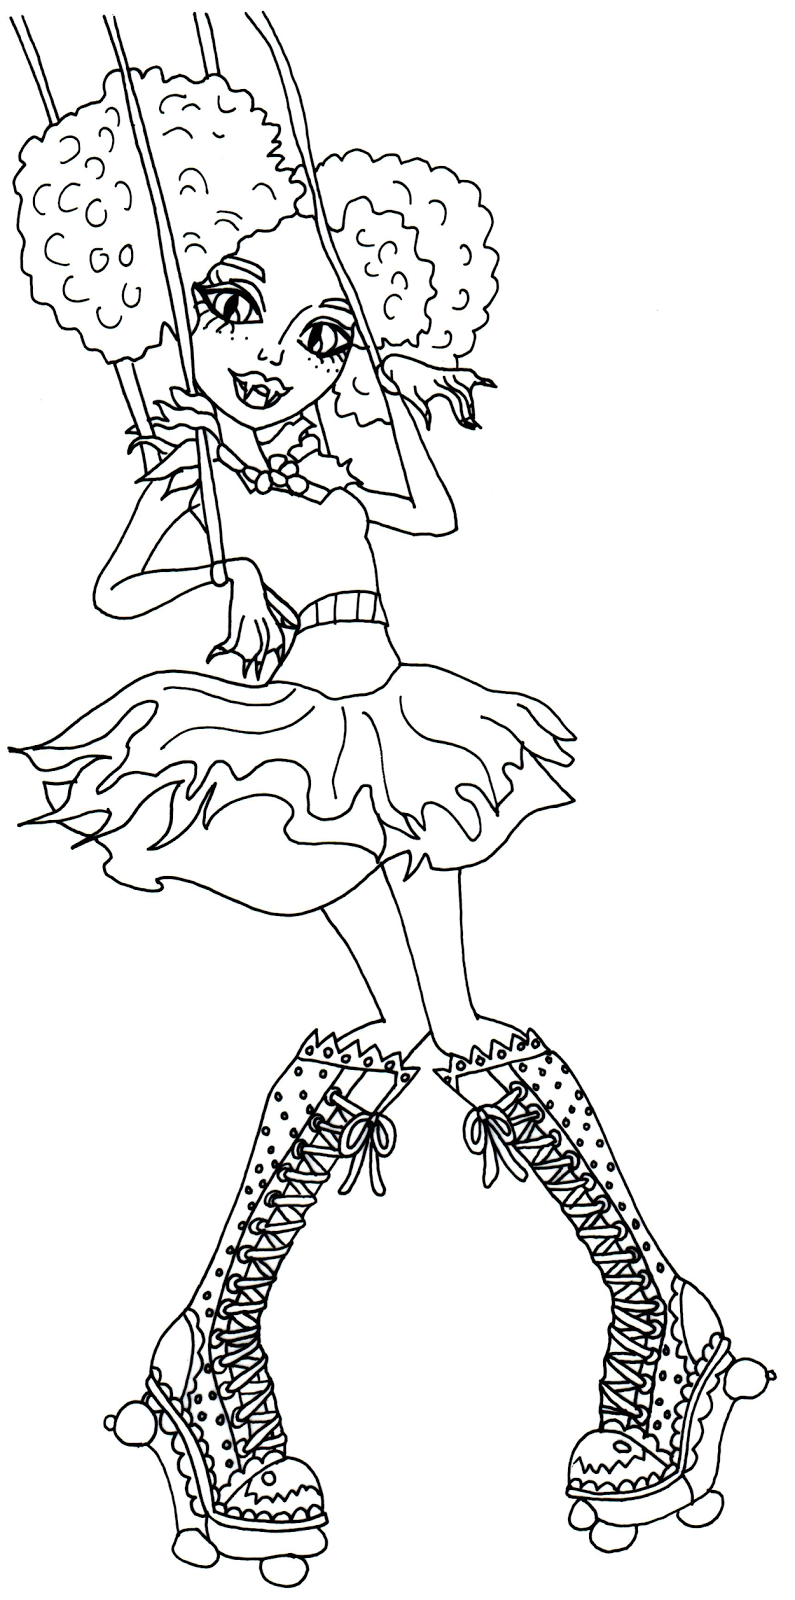 printable coloring book pages - photo#32